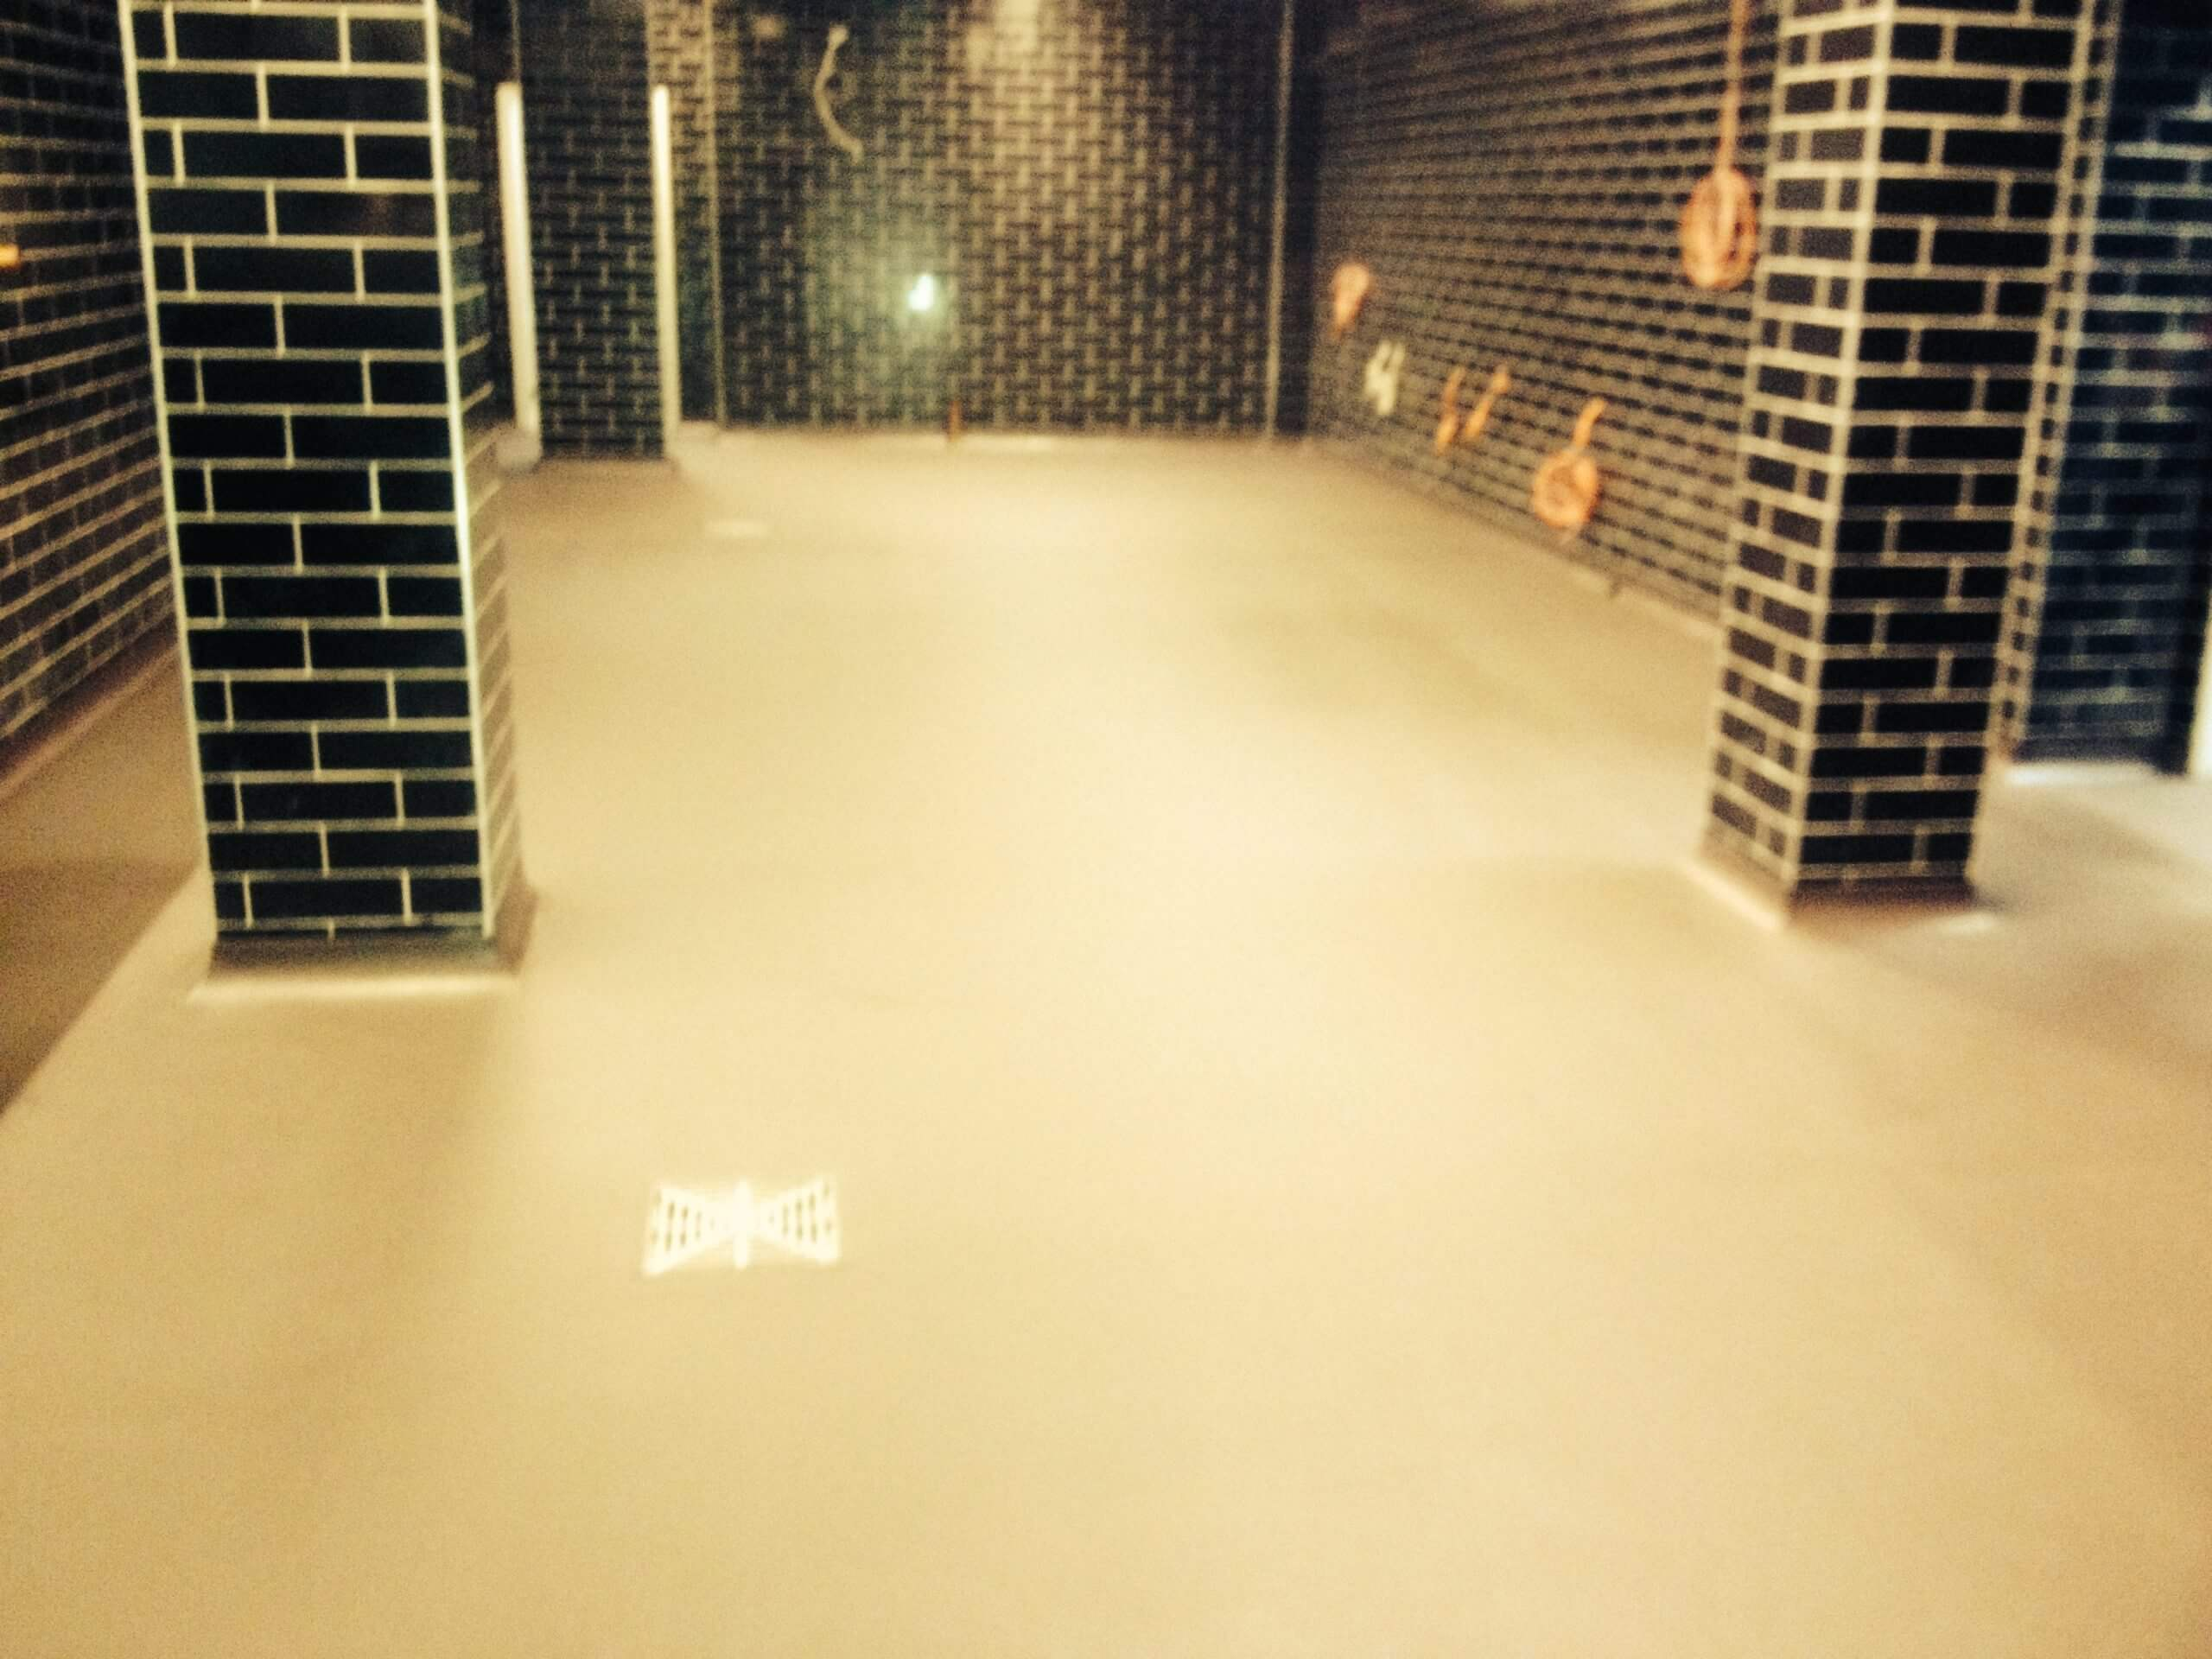 Commercial Flooring At Supermarket Display Area - Flooring Options - Remedial Building Services